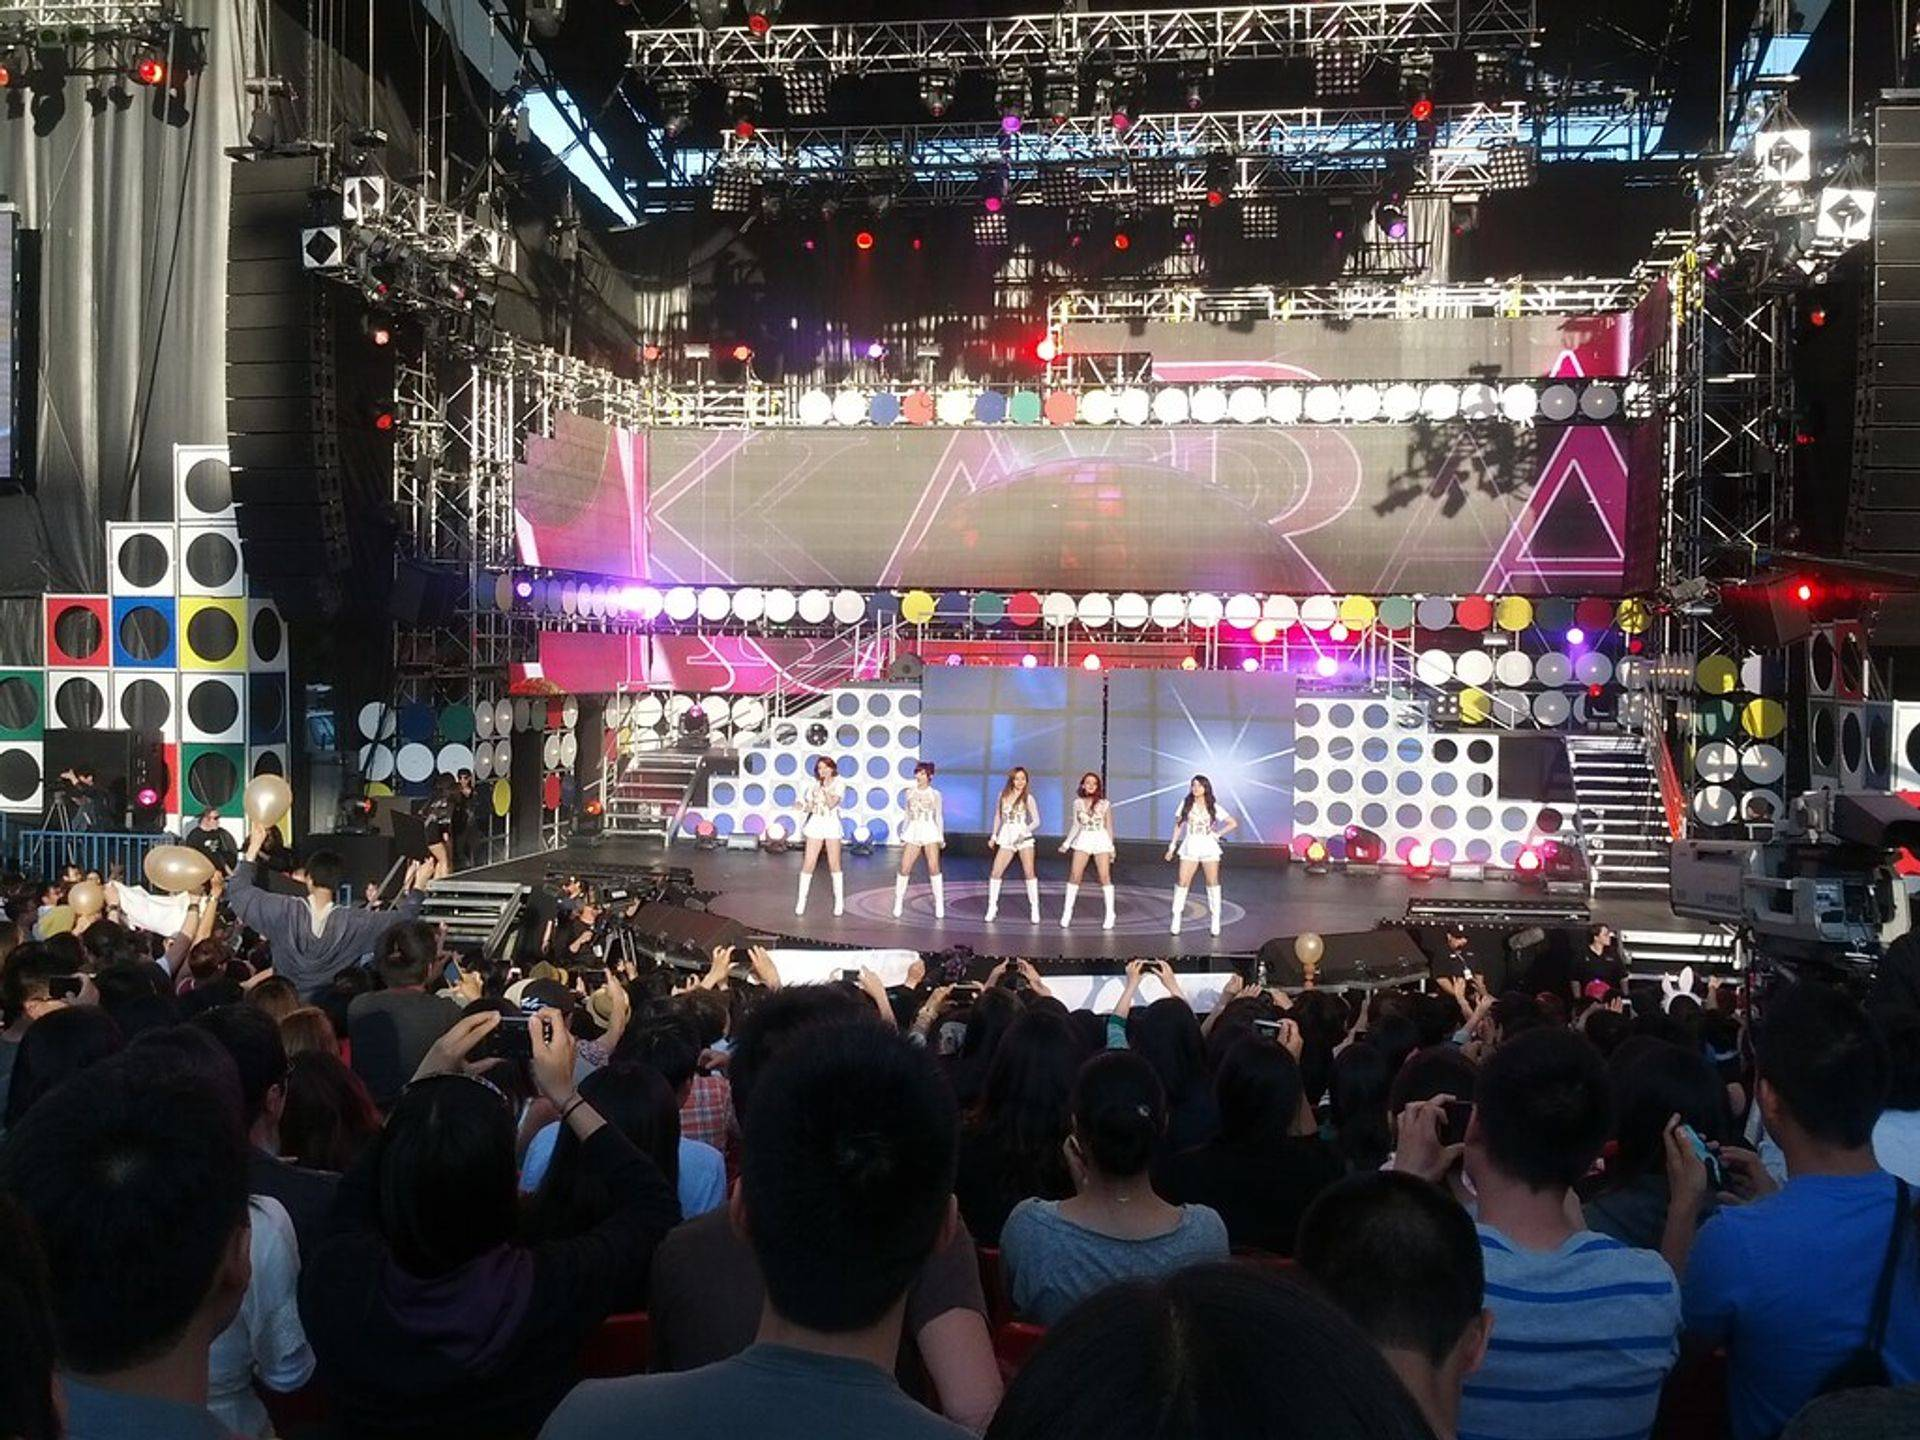 Kpop performance live on stage